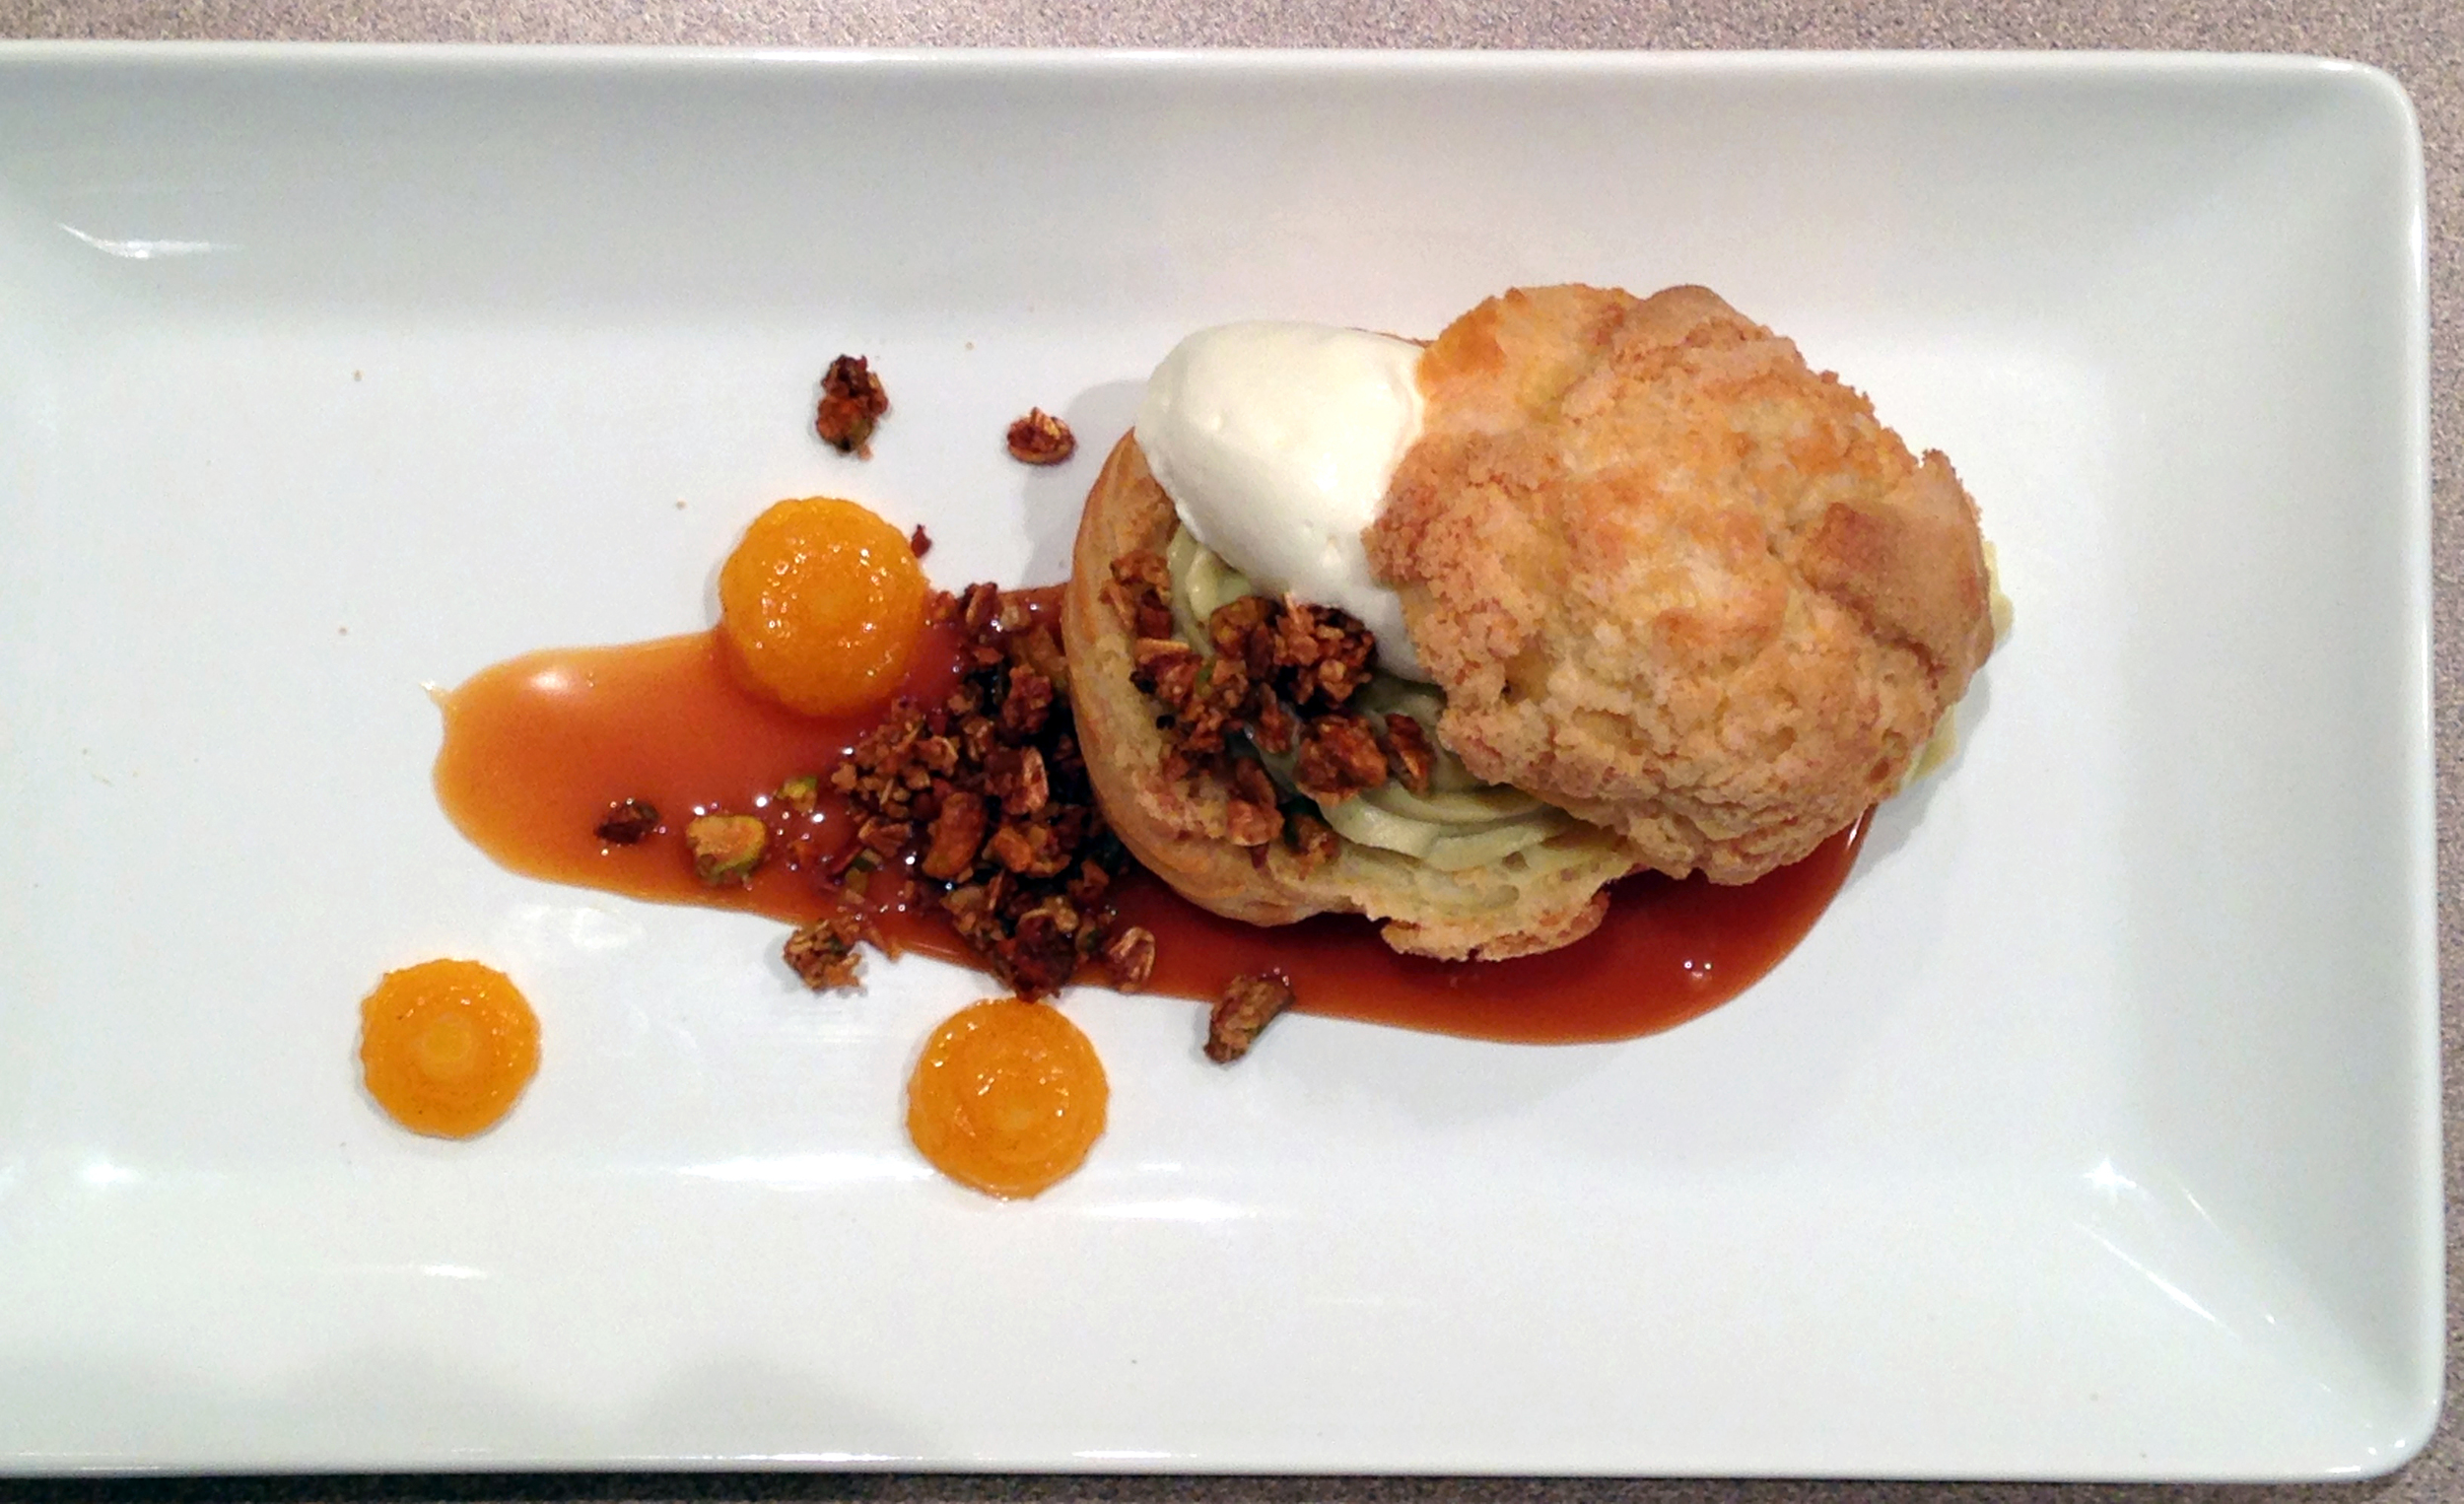 Lauren brought the components to pistachio apricot profiterols and everyone got to try their hand at artful plating